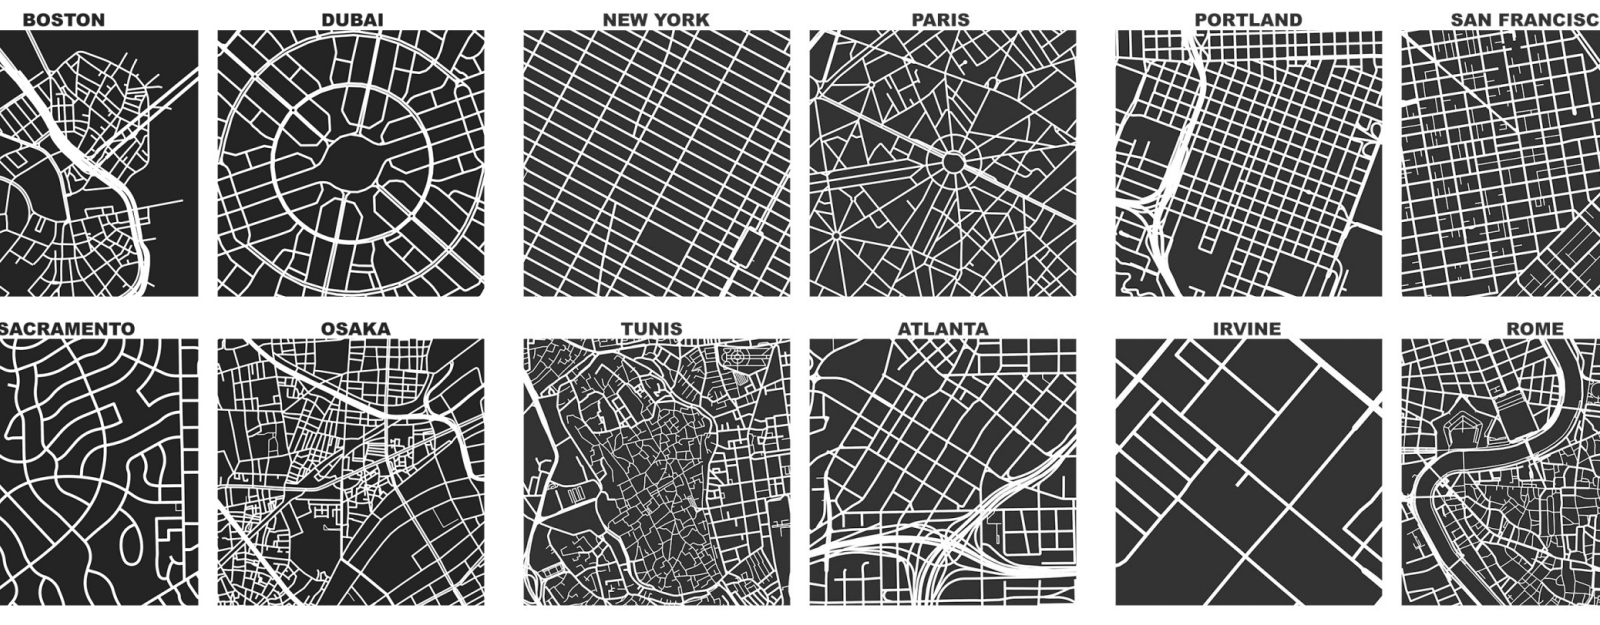 Geoff Boeing's Square-Mile Street Network Visualization Tool - Core77